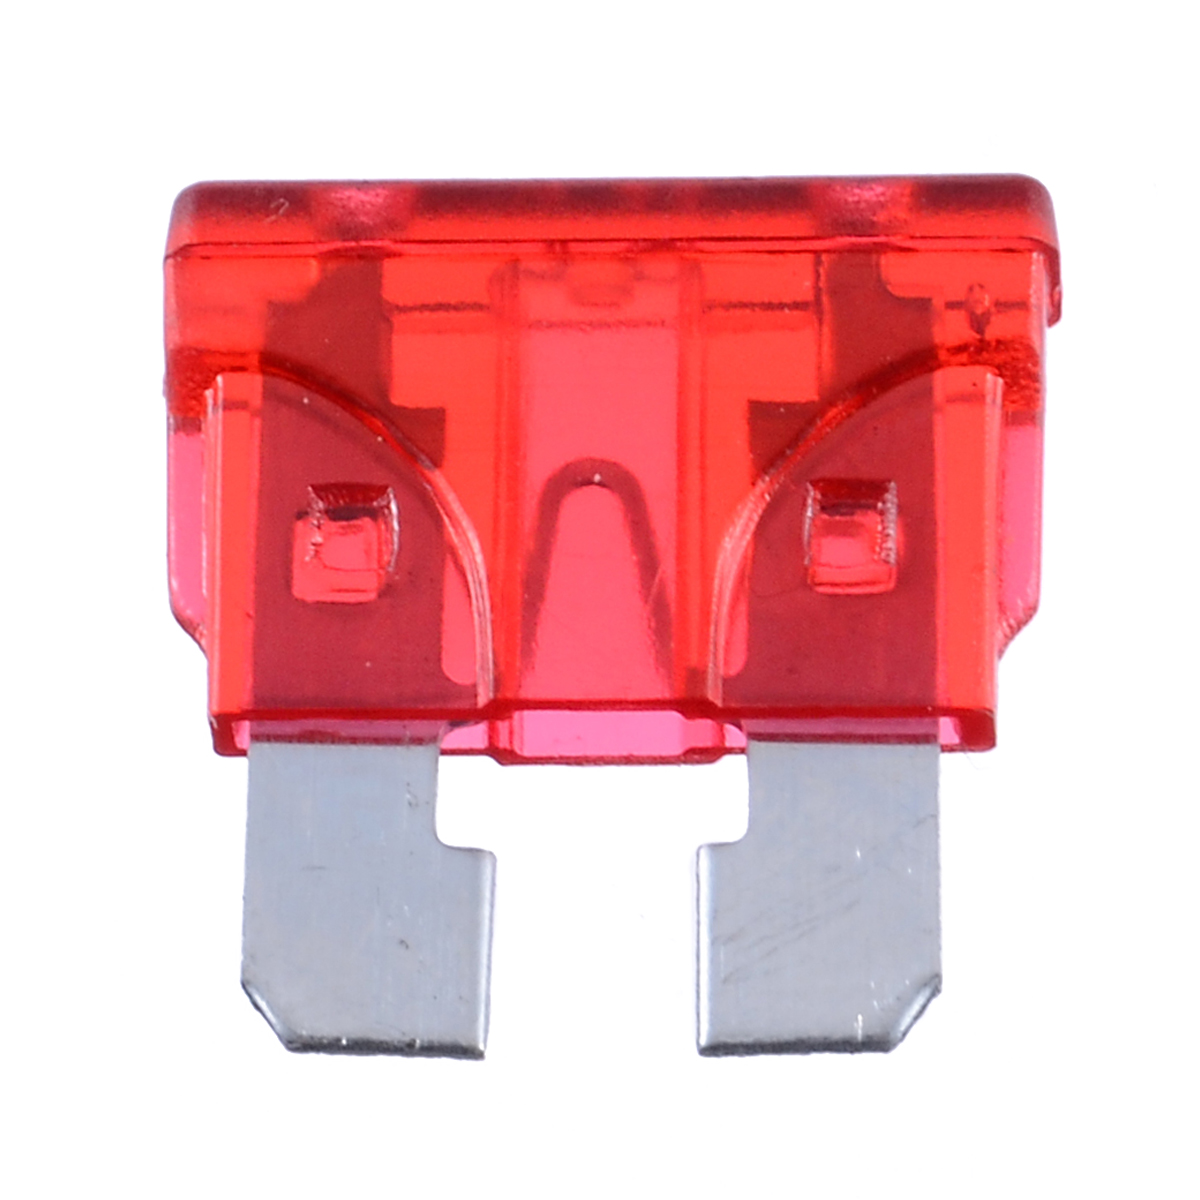 1pcs 12V Fuse Holder Add-a-circuit TAP Adapter 10AMP Standard Blade Auto Fuse with Holder